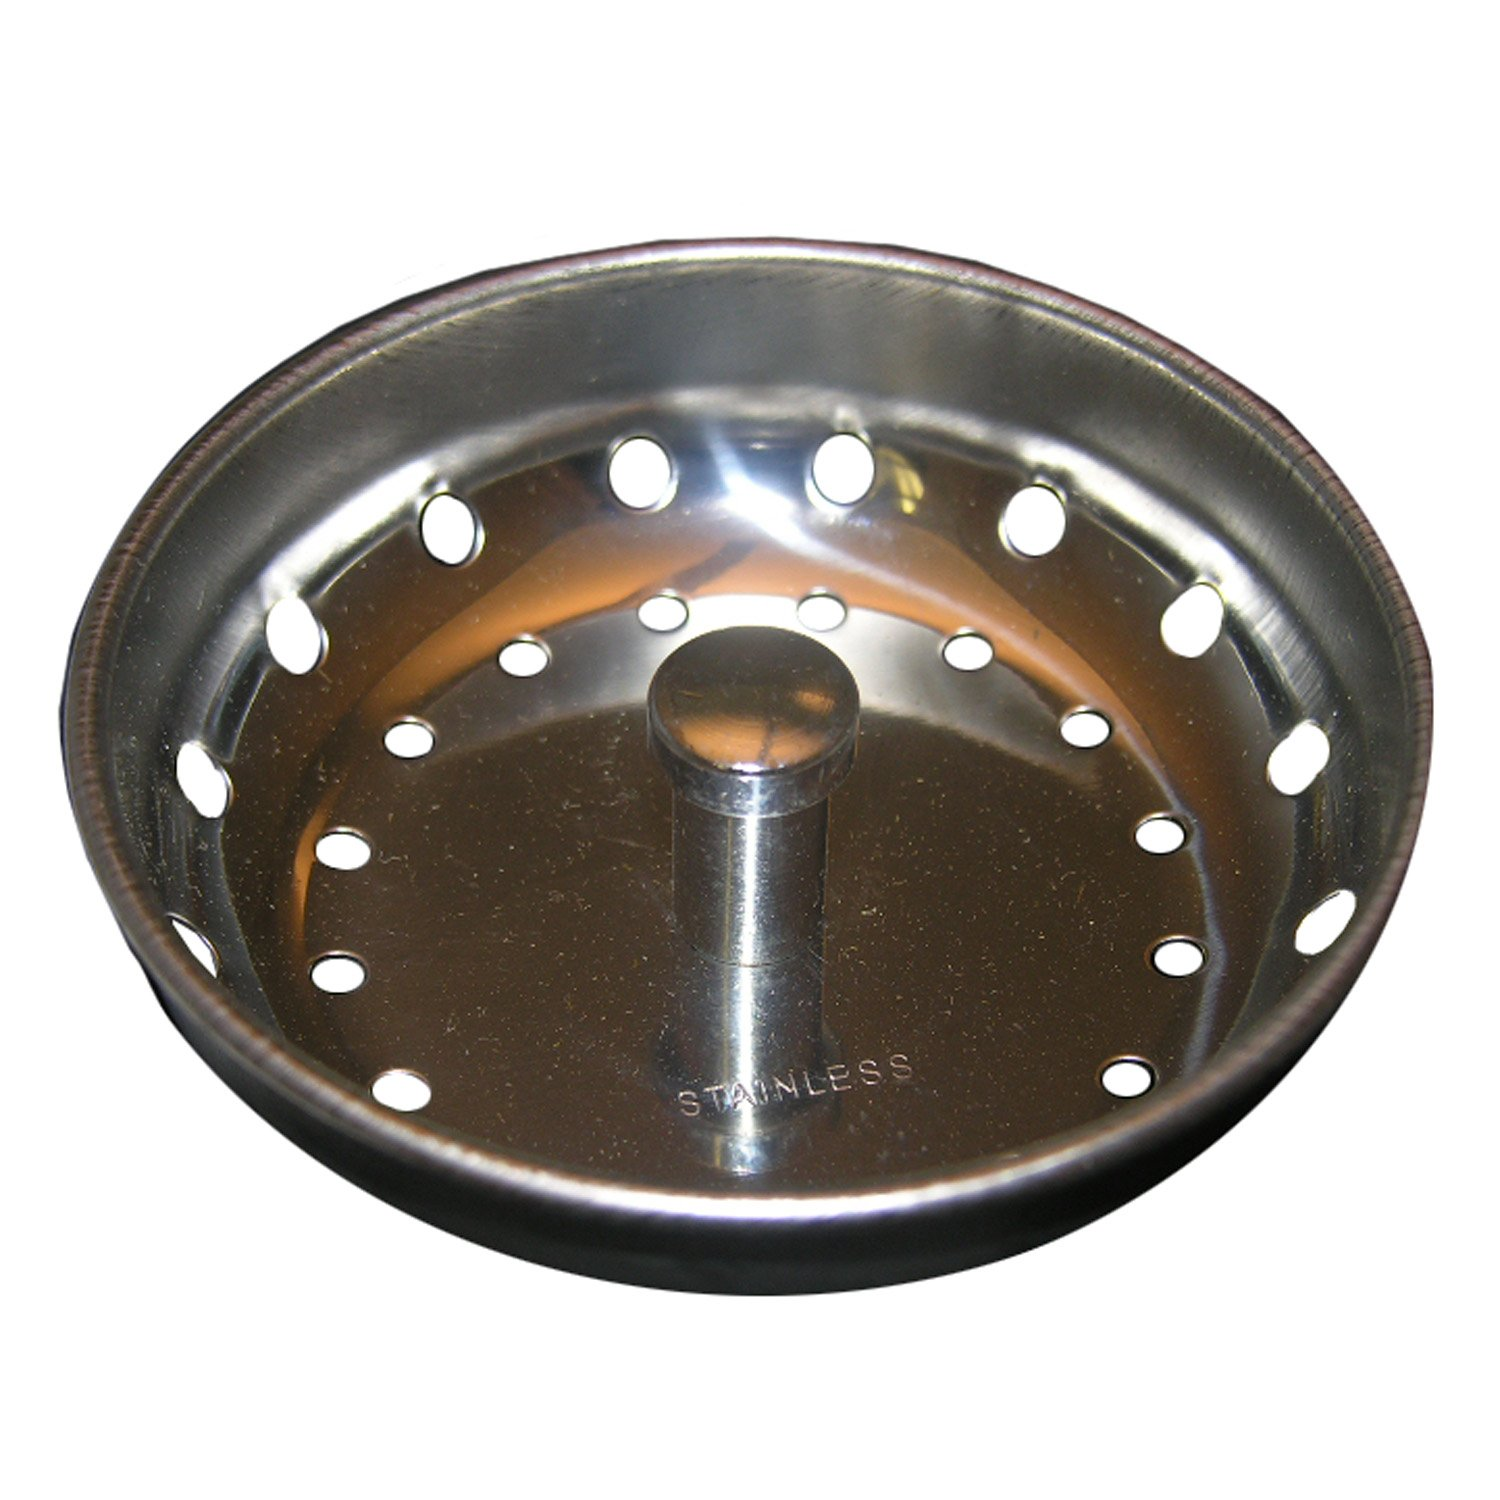 LASCO 03 1301 ABS Replacement Basket Strainer for Kitchen Sink